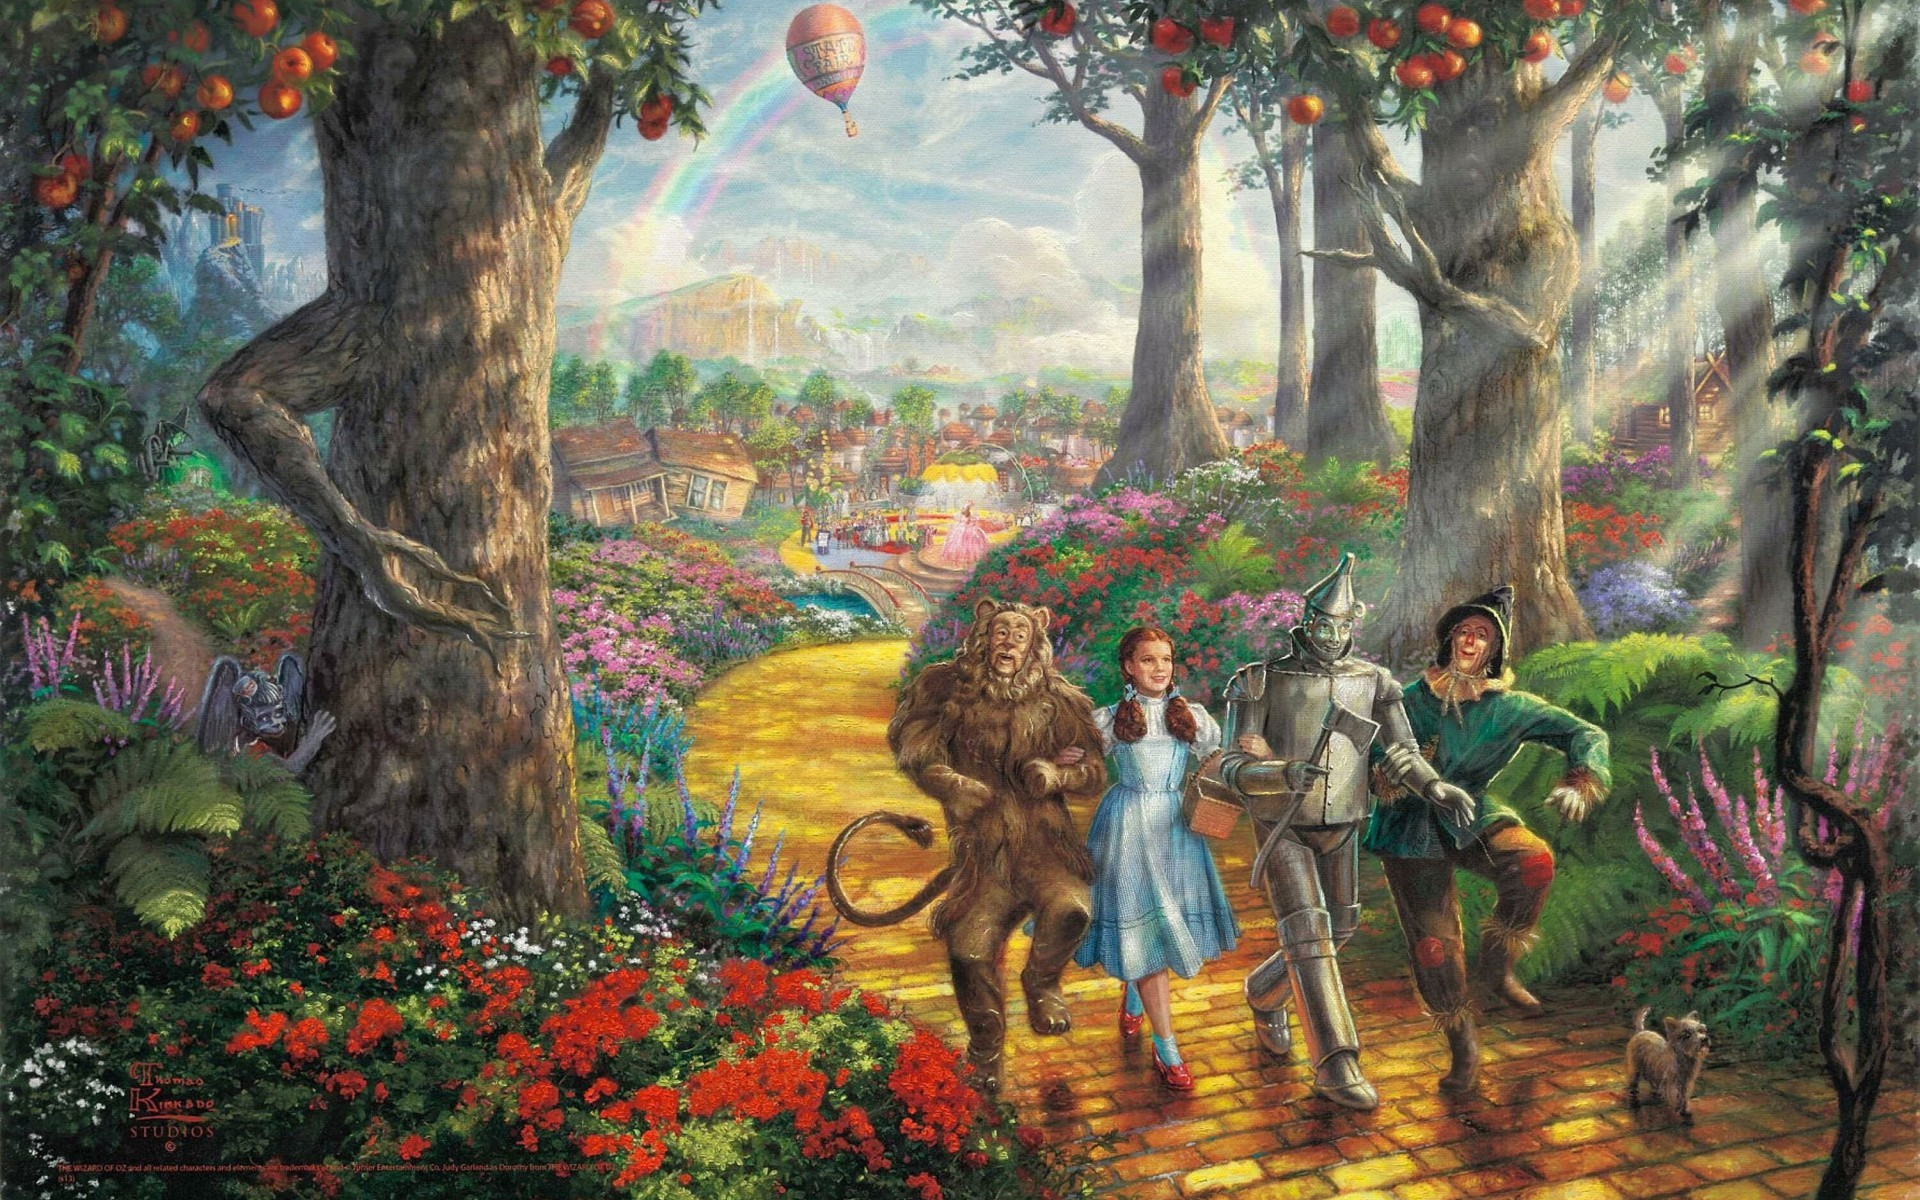 1920x1200 Image The Wizard Of Oz Wallpapers And Stock Photos A